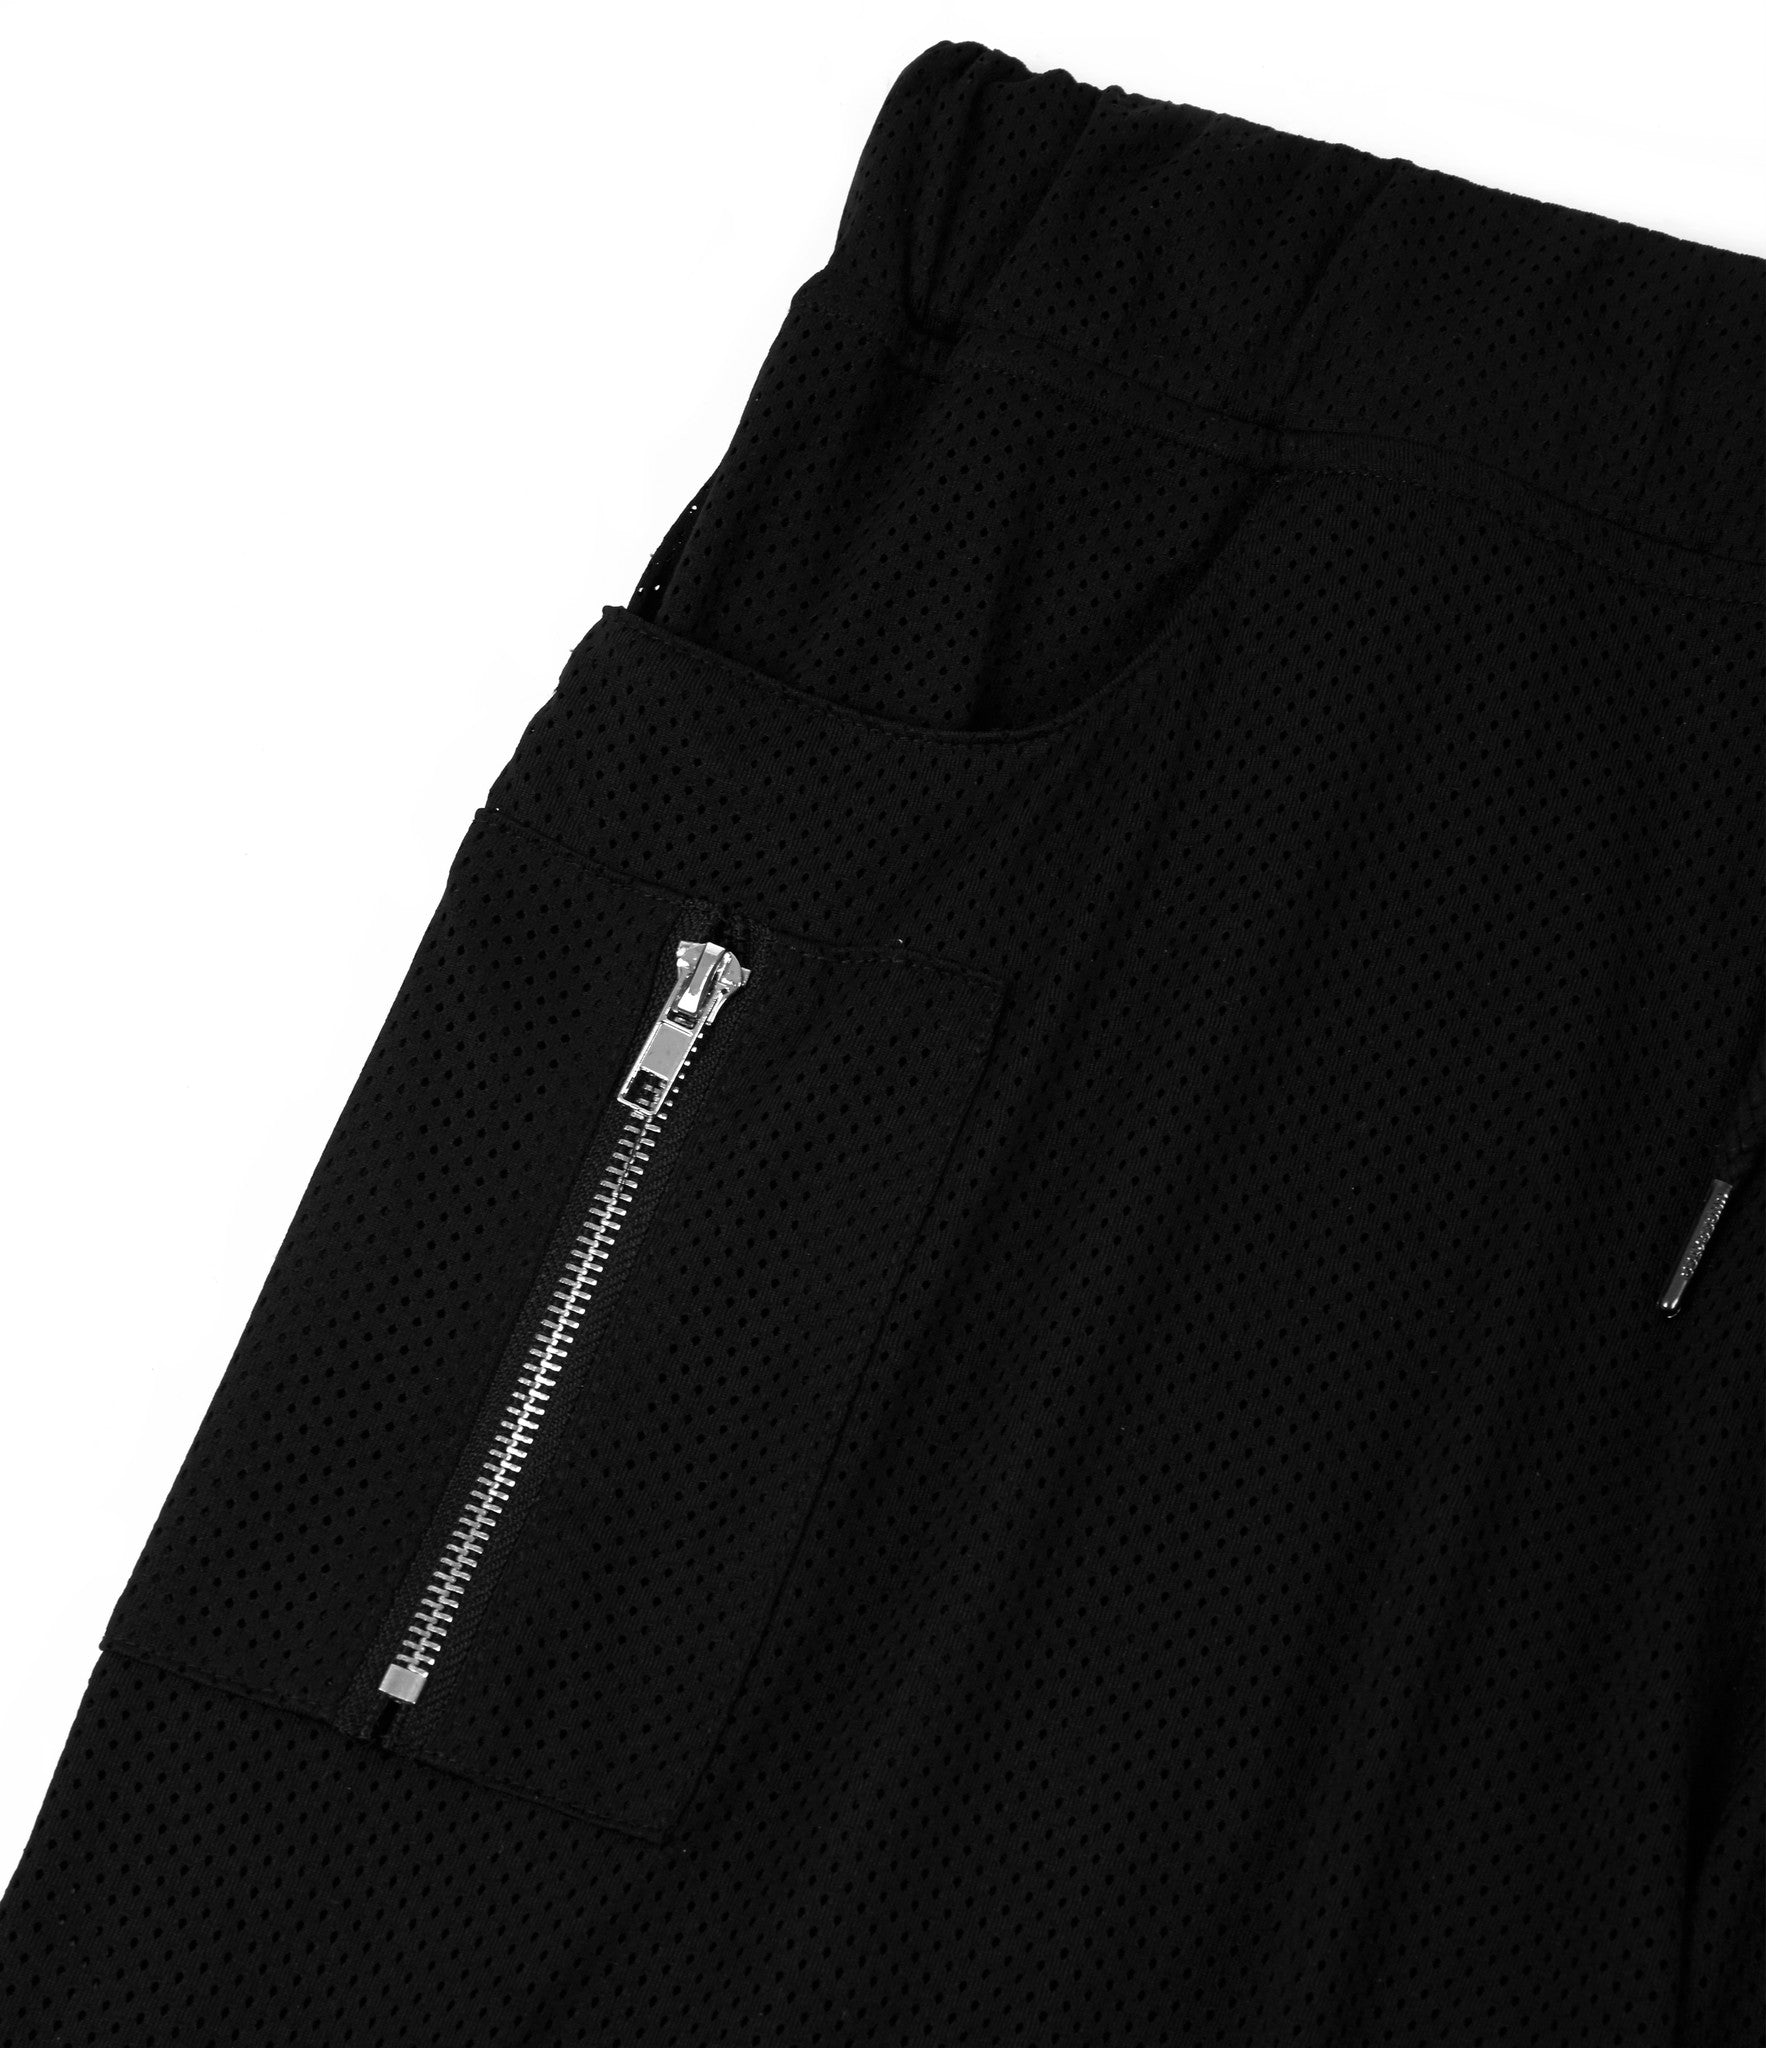 SR283 Utility Airtex Shorts - Black - underated london - underatedco - 3